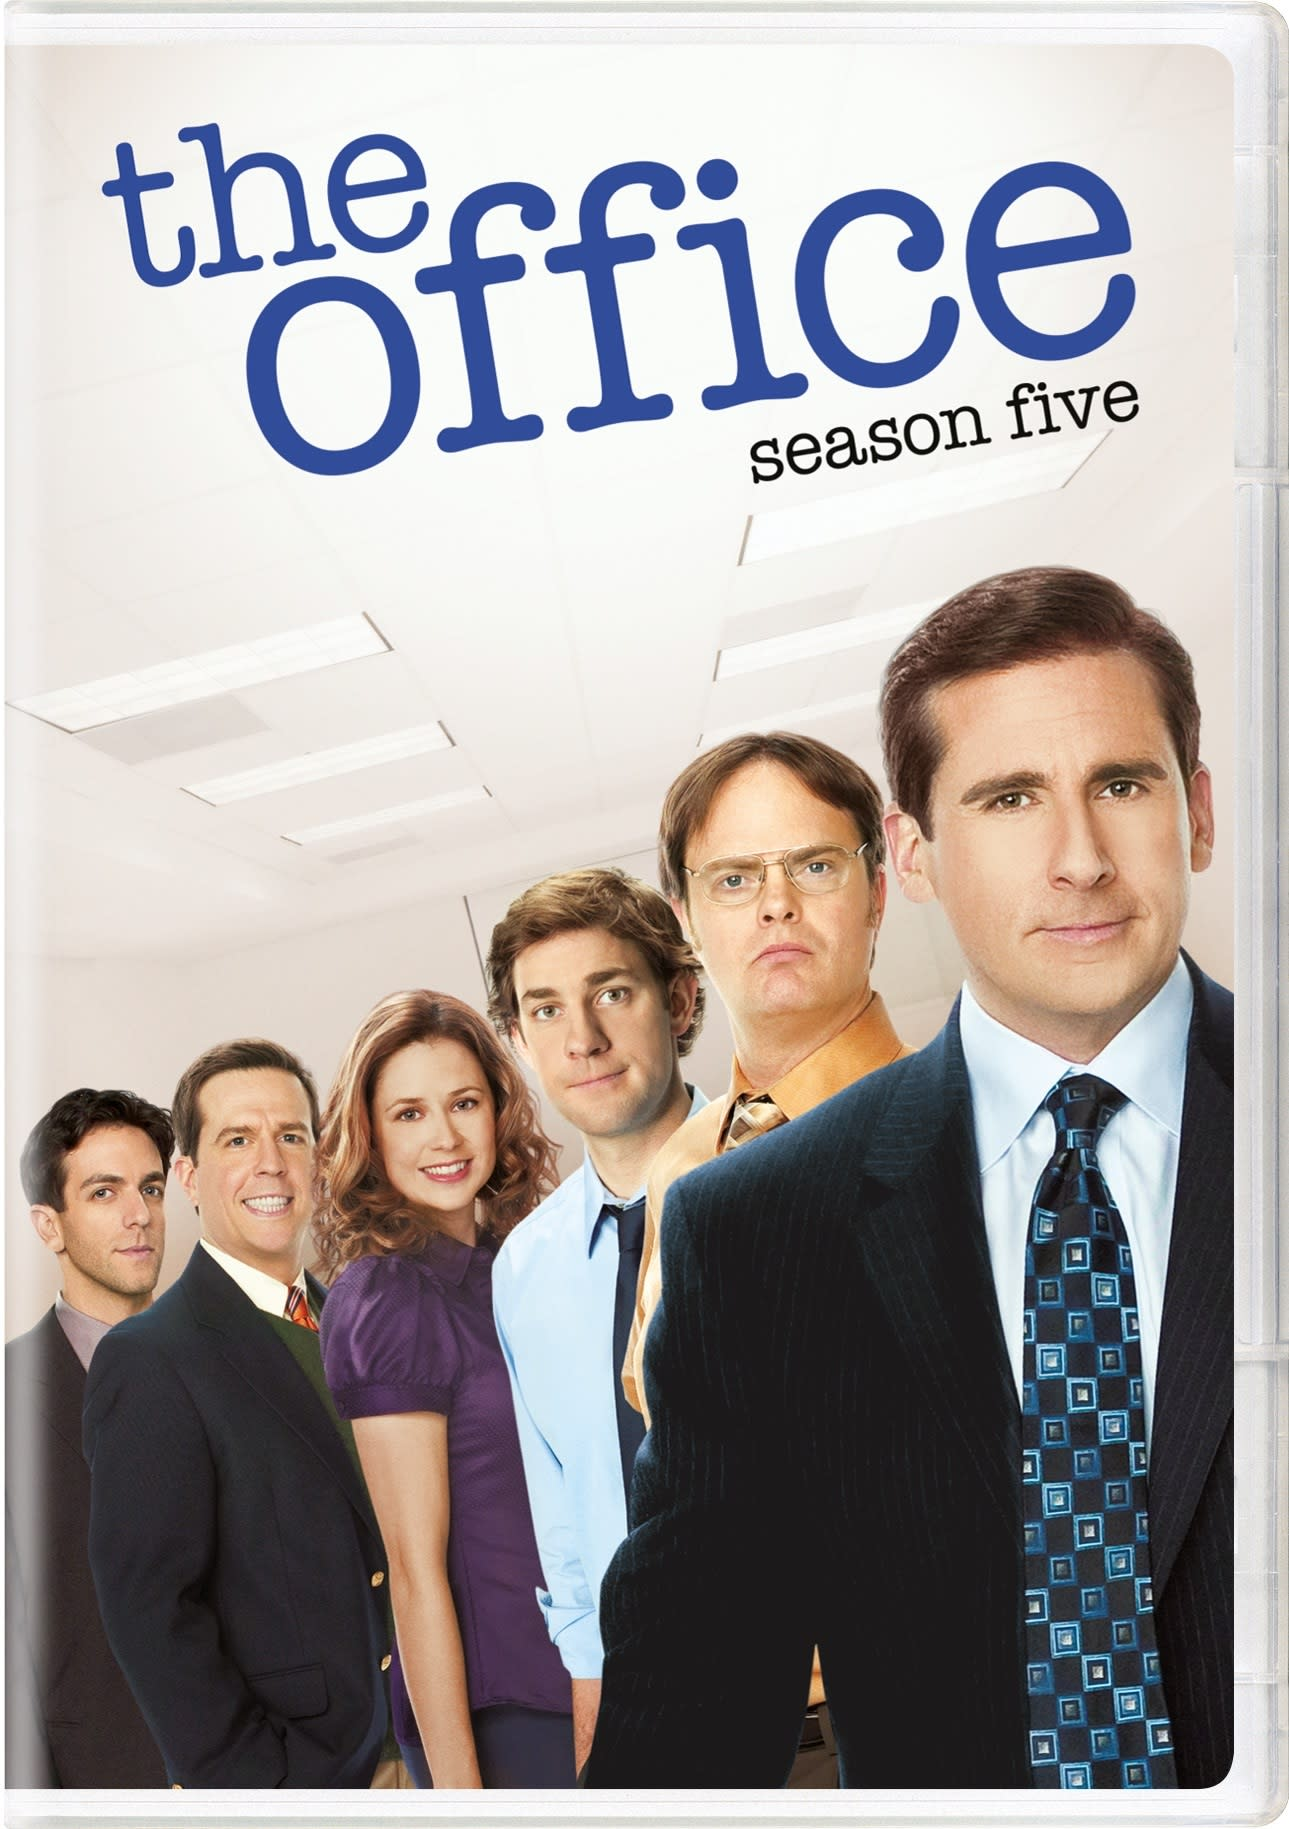 The Office - An American Workplace: Season 5 (2019) [DVD]